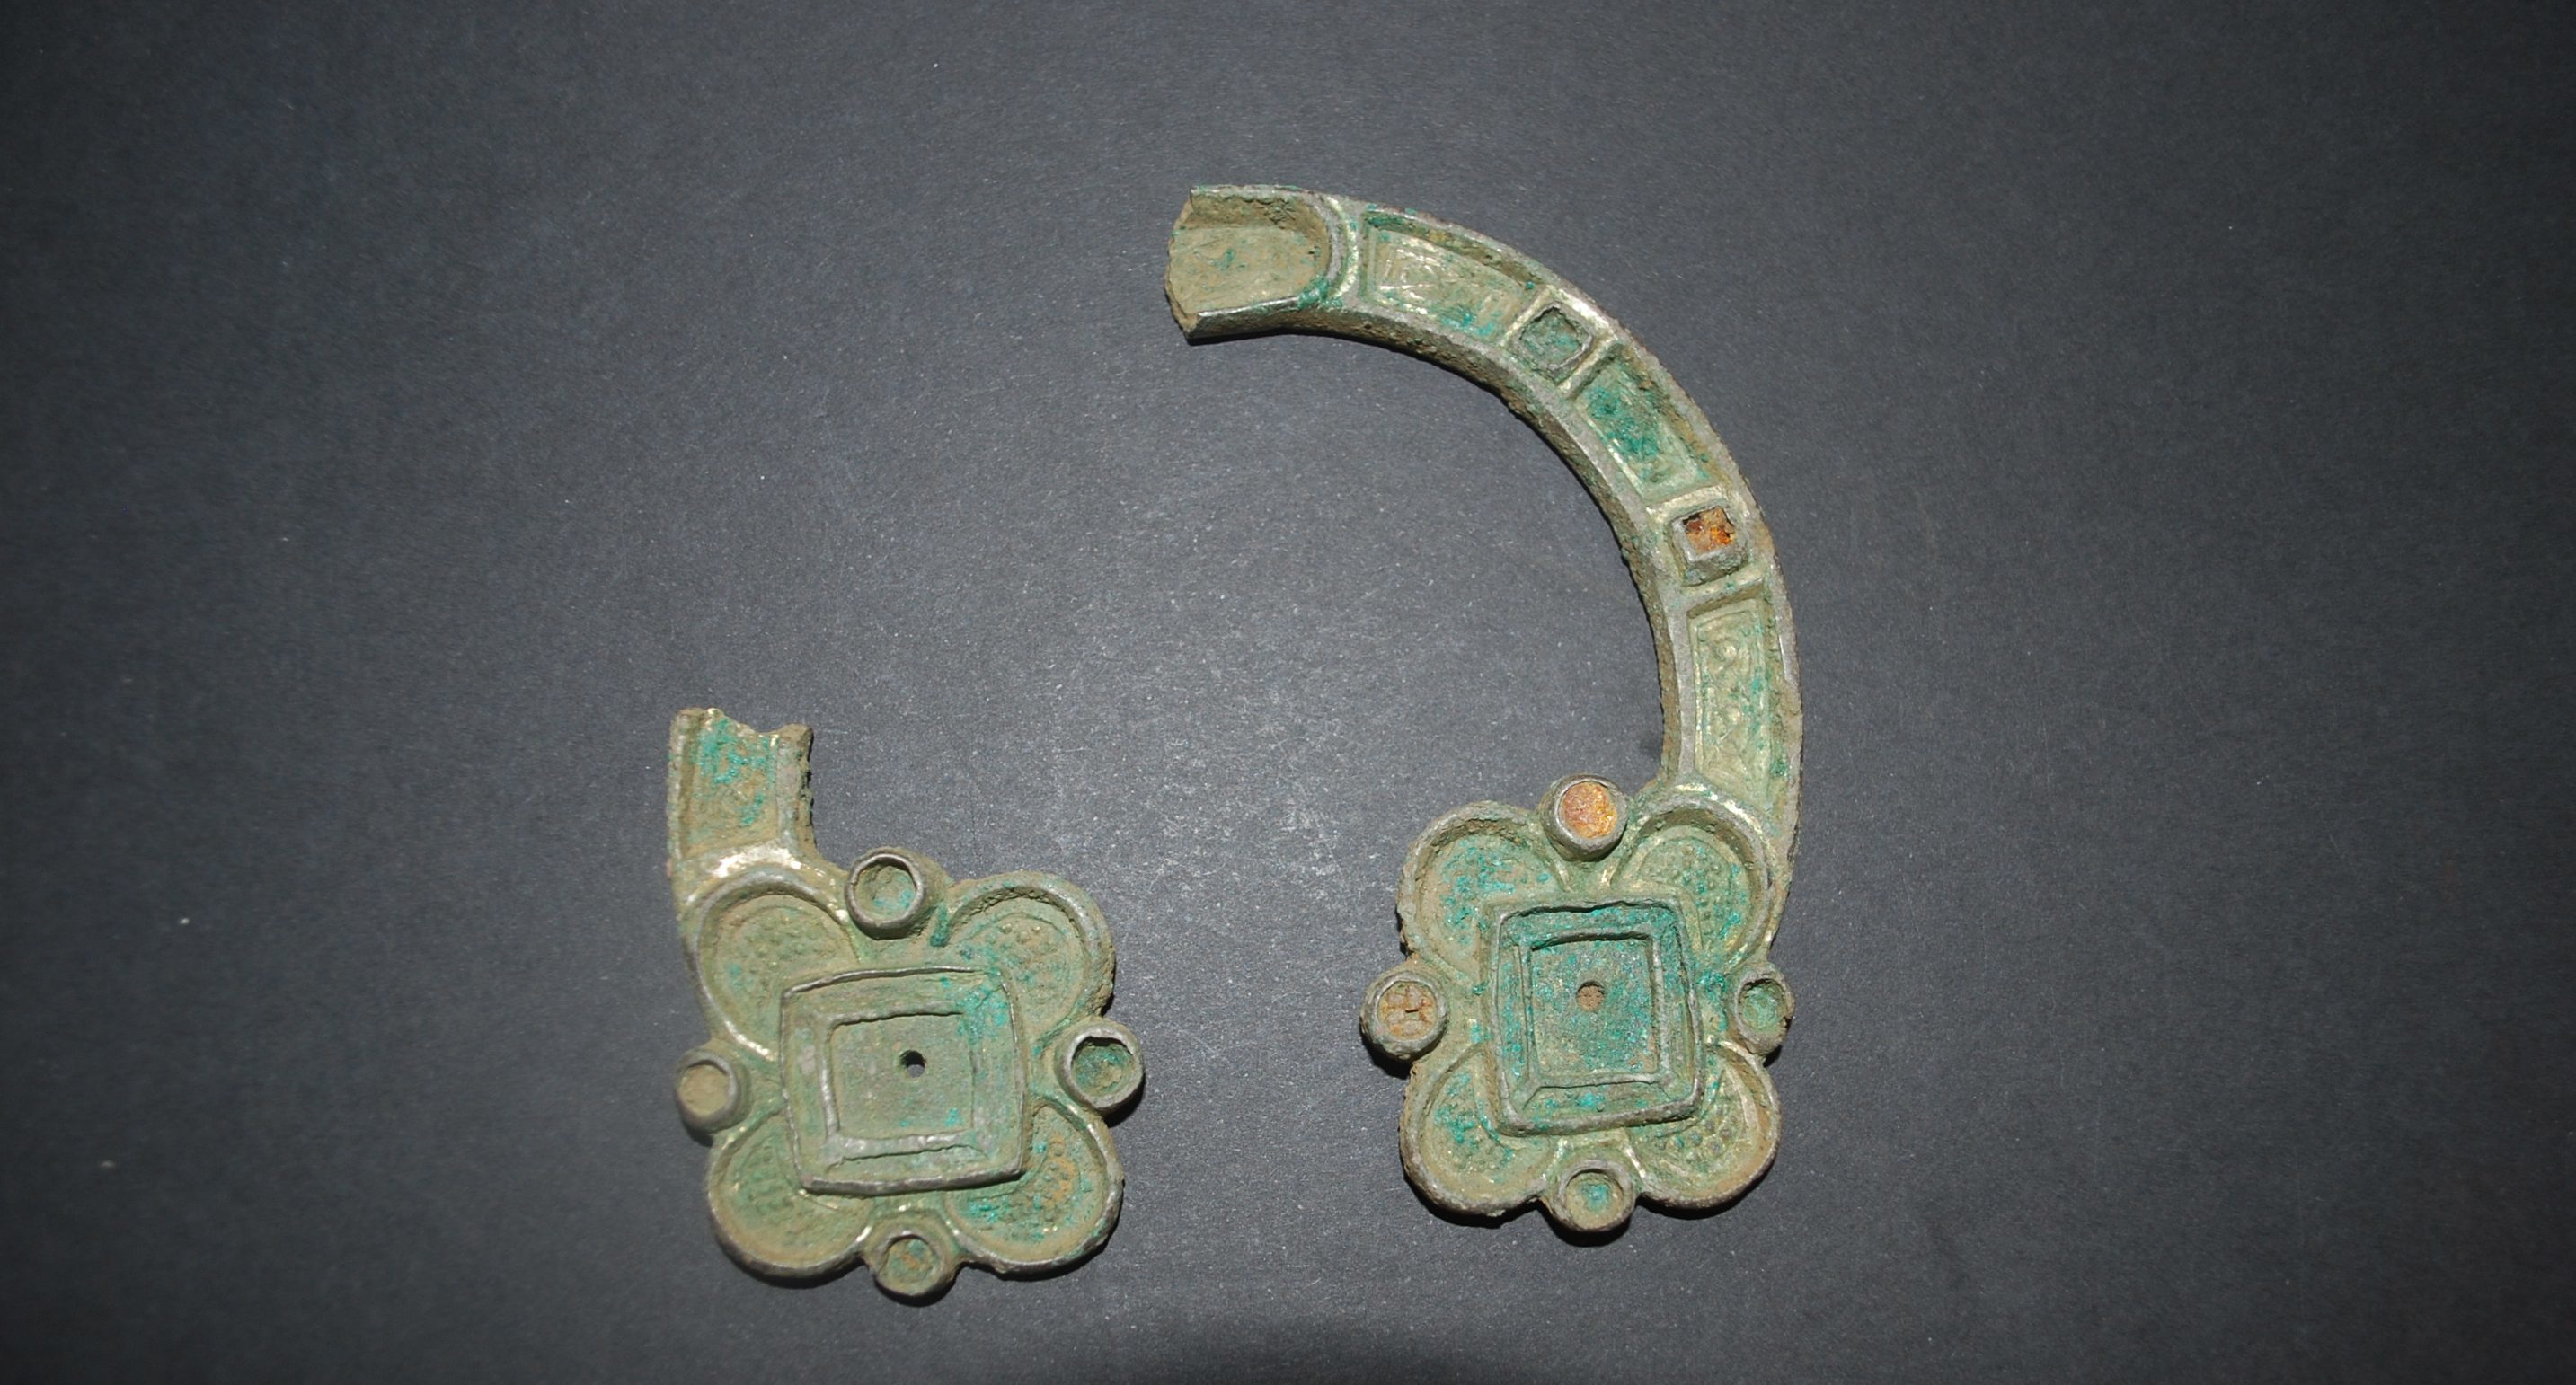 The brooch unearthed at Boarhills